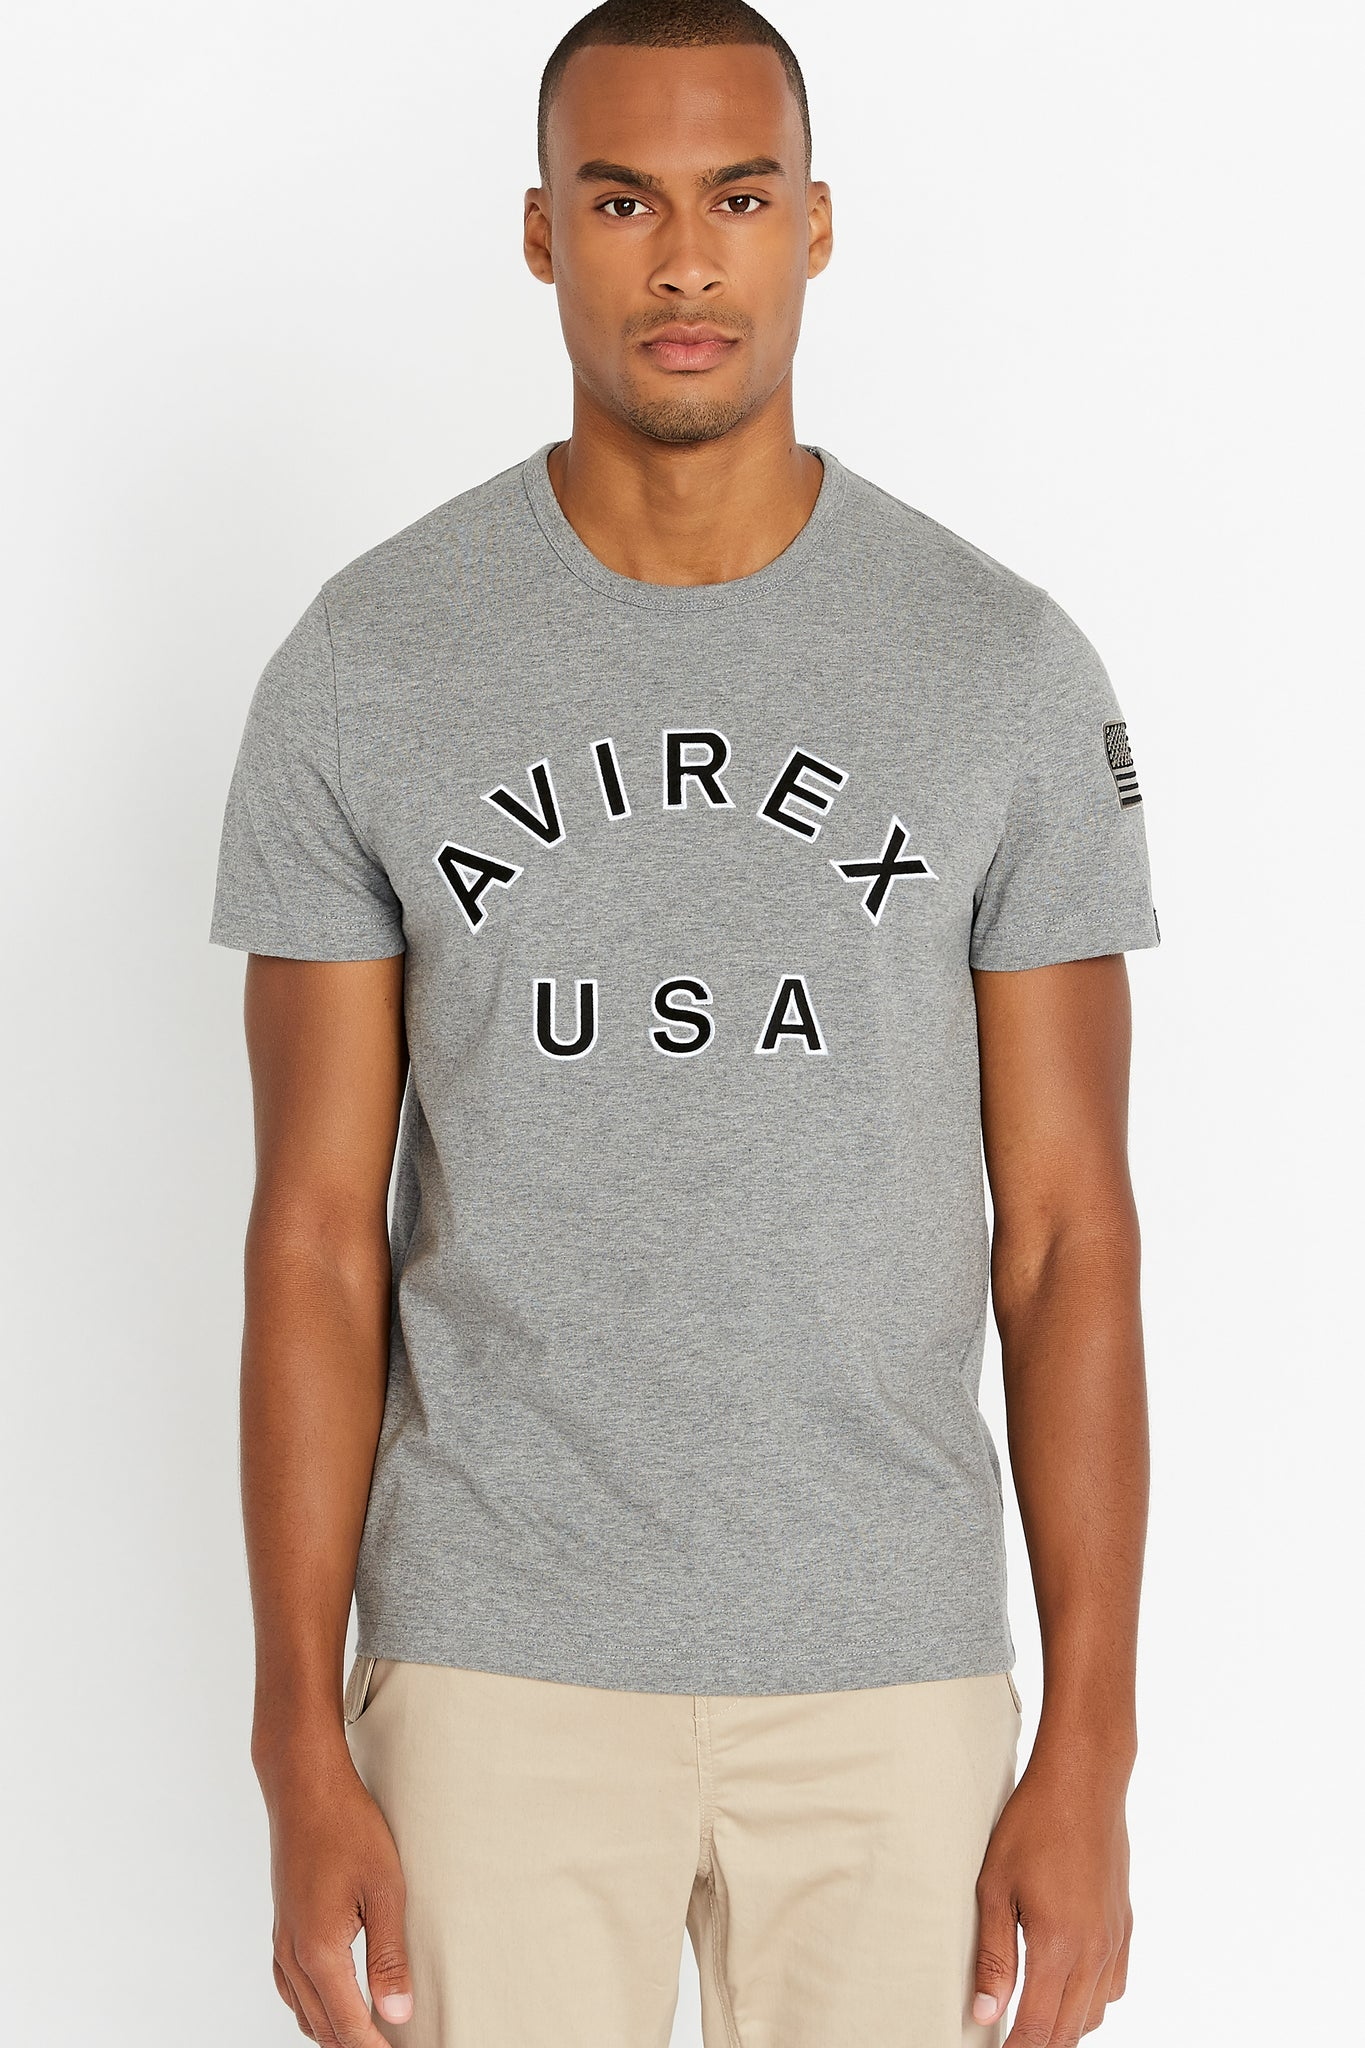 Men wearing a light grey short sleeve crew T-shirt with bold logo across the front saying Avirex USA